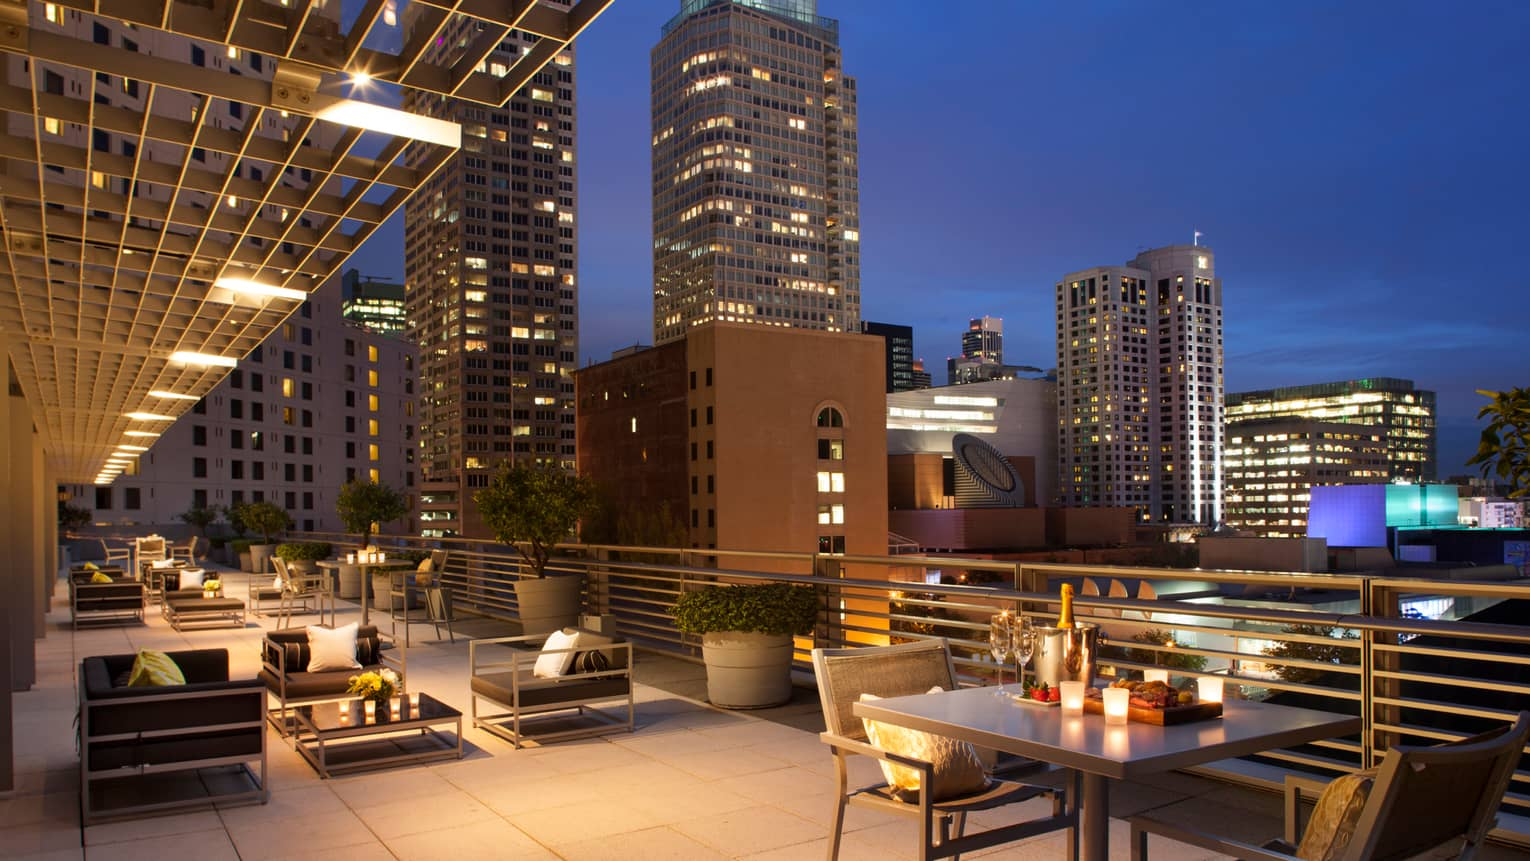 Large rooftop patio at night with candle-lit tables, champagne on ice, black cushioned chairs, city lights